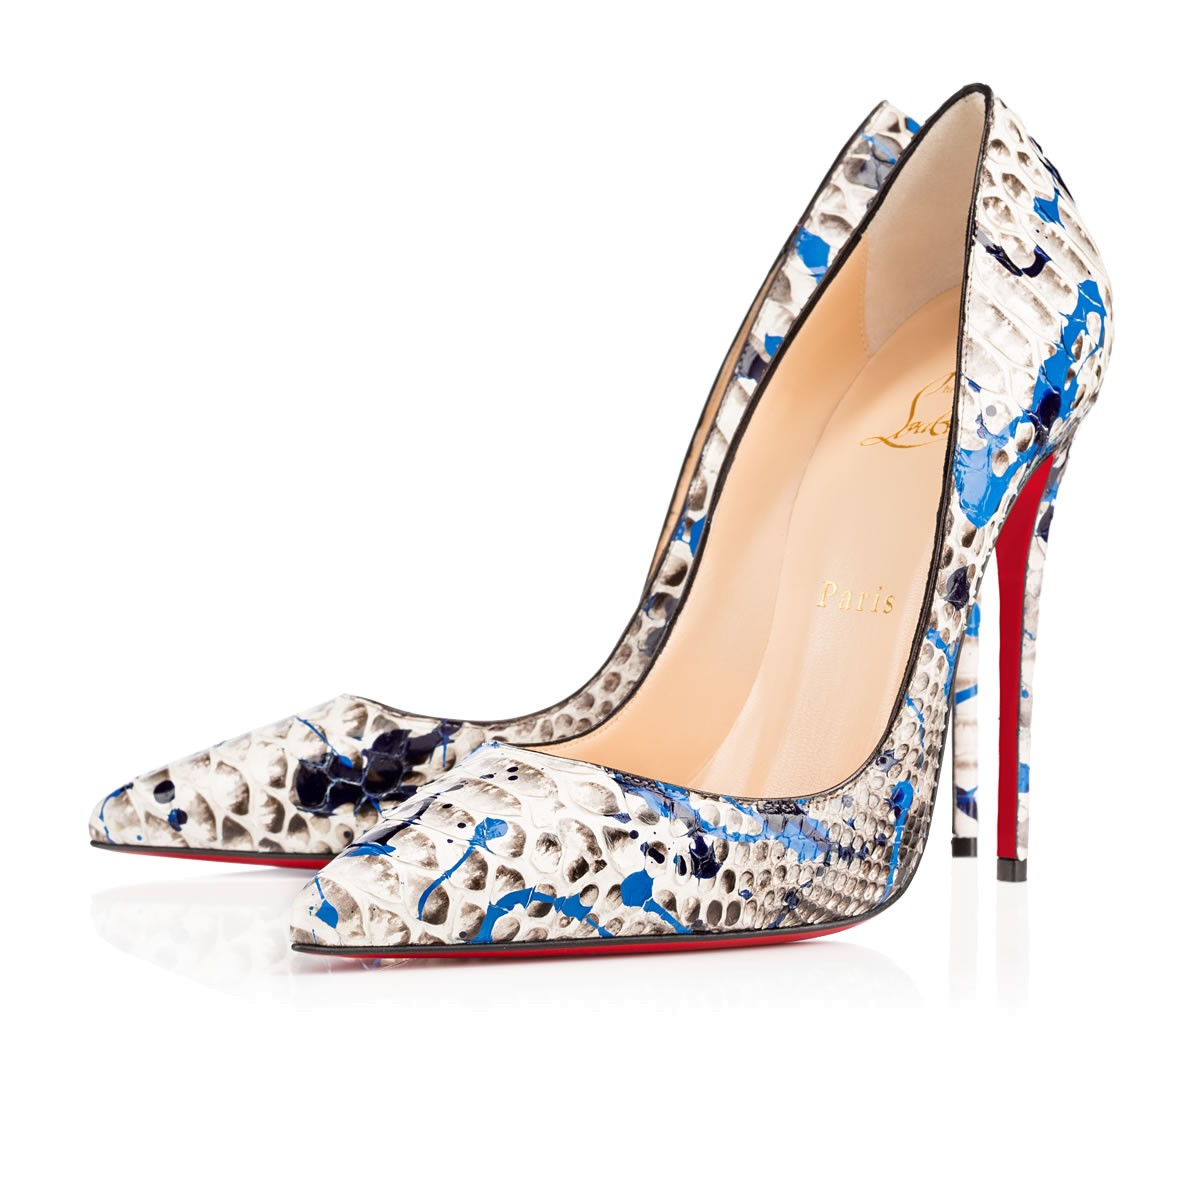 Christian louboutin So Kate Python Vulcano Pumps in Blue | Lyst